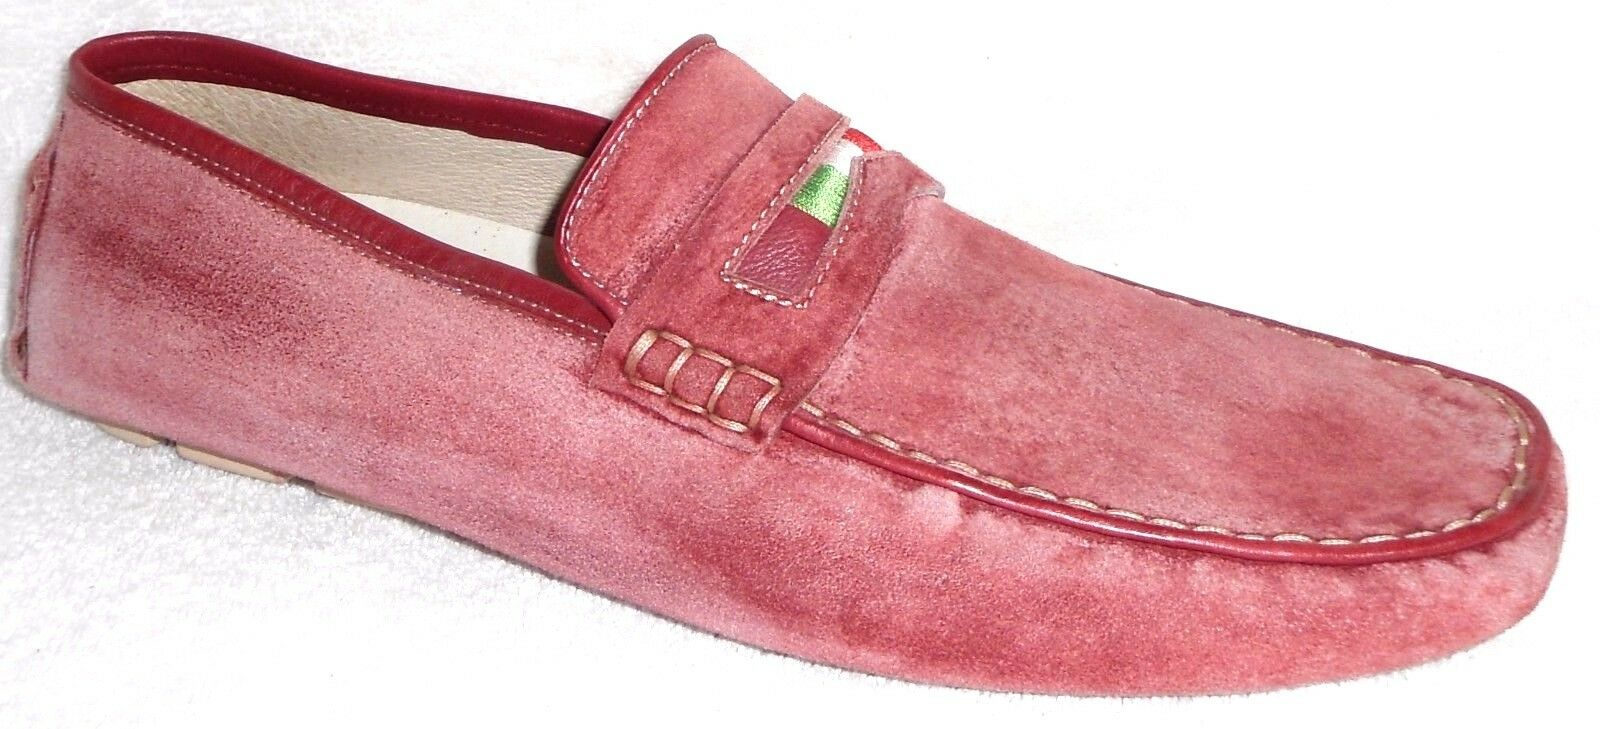 NEW BACCO BUCCI WASHED RED SUEDE LOAFERS SLIP ON SHOES SIZE 9